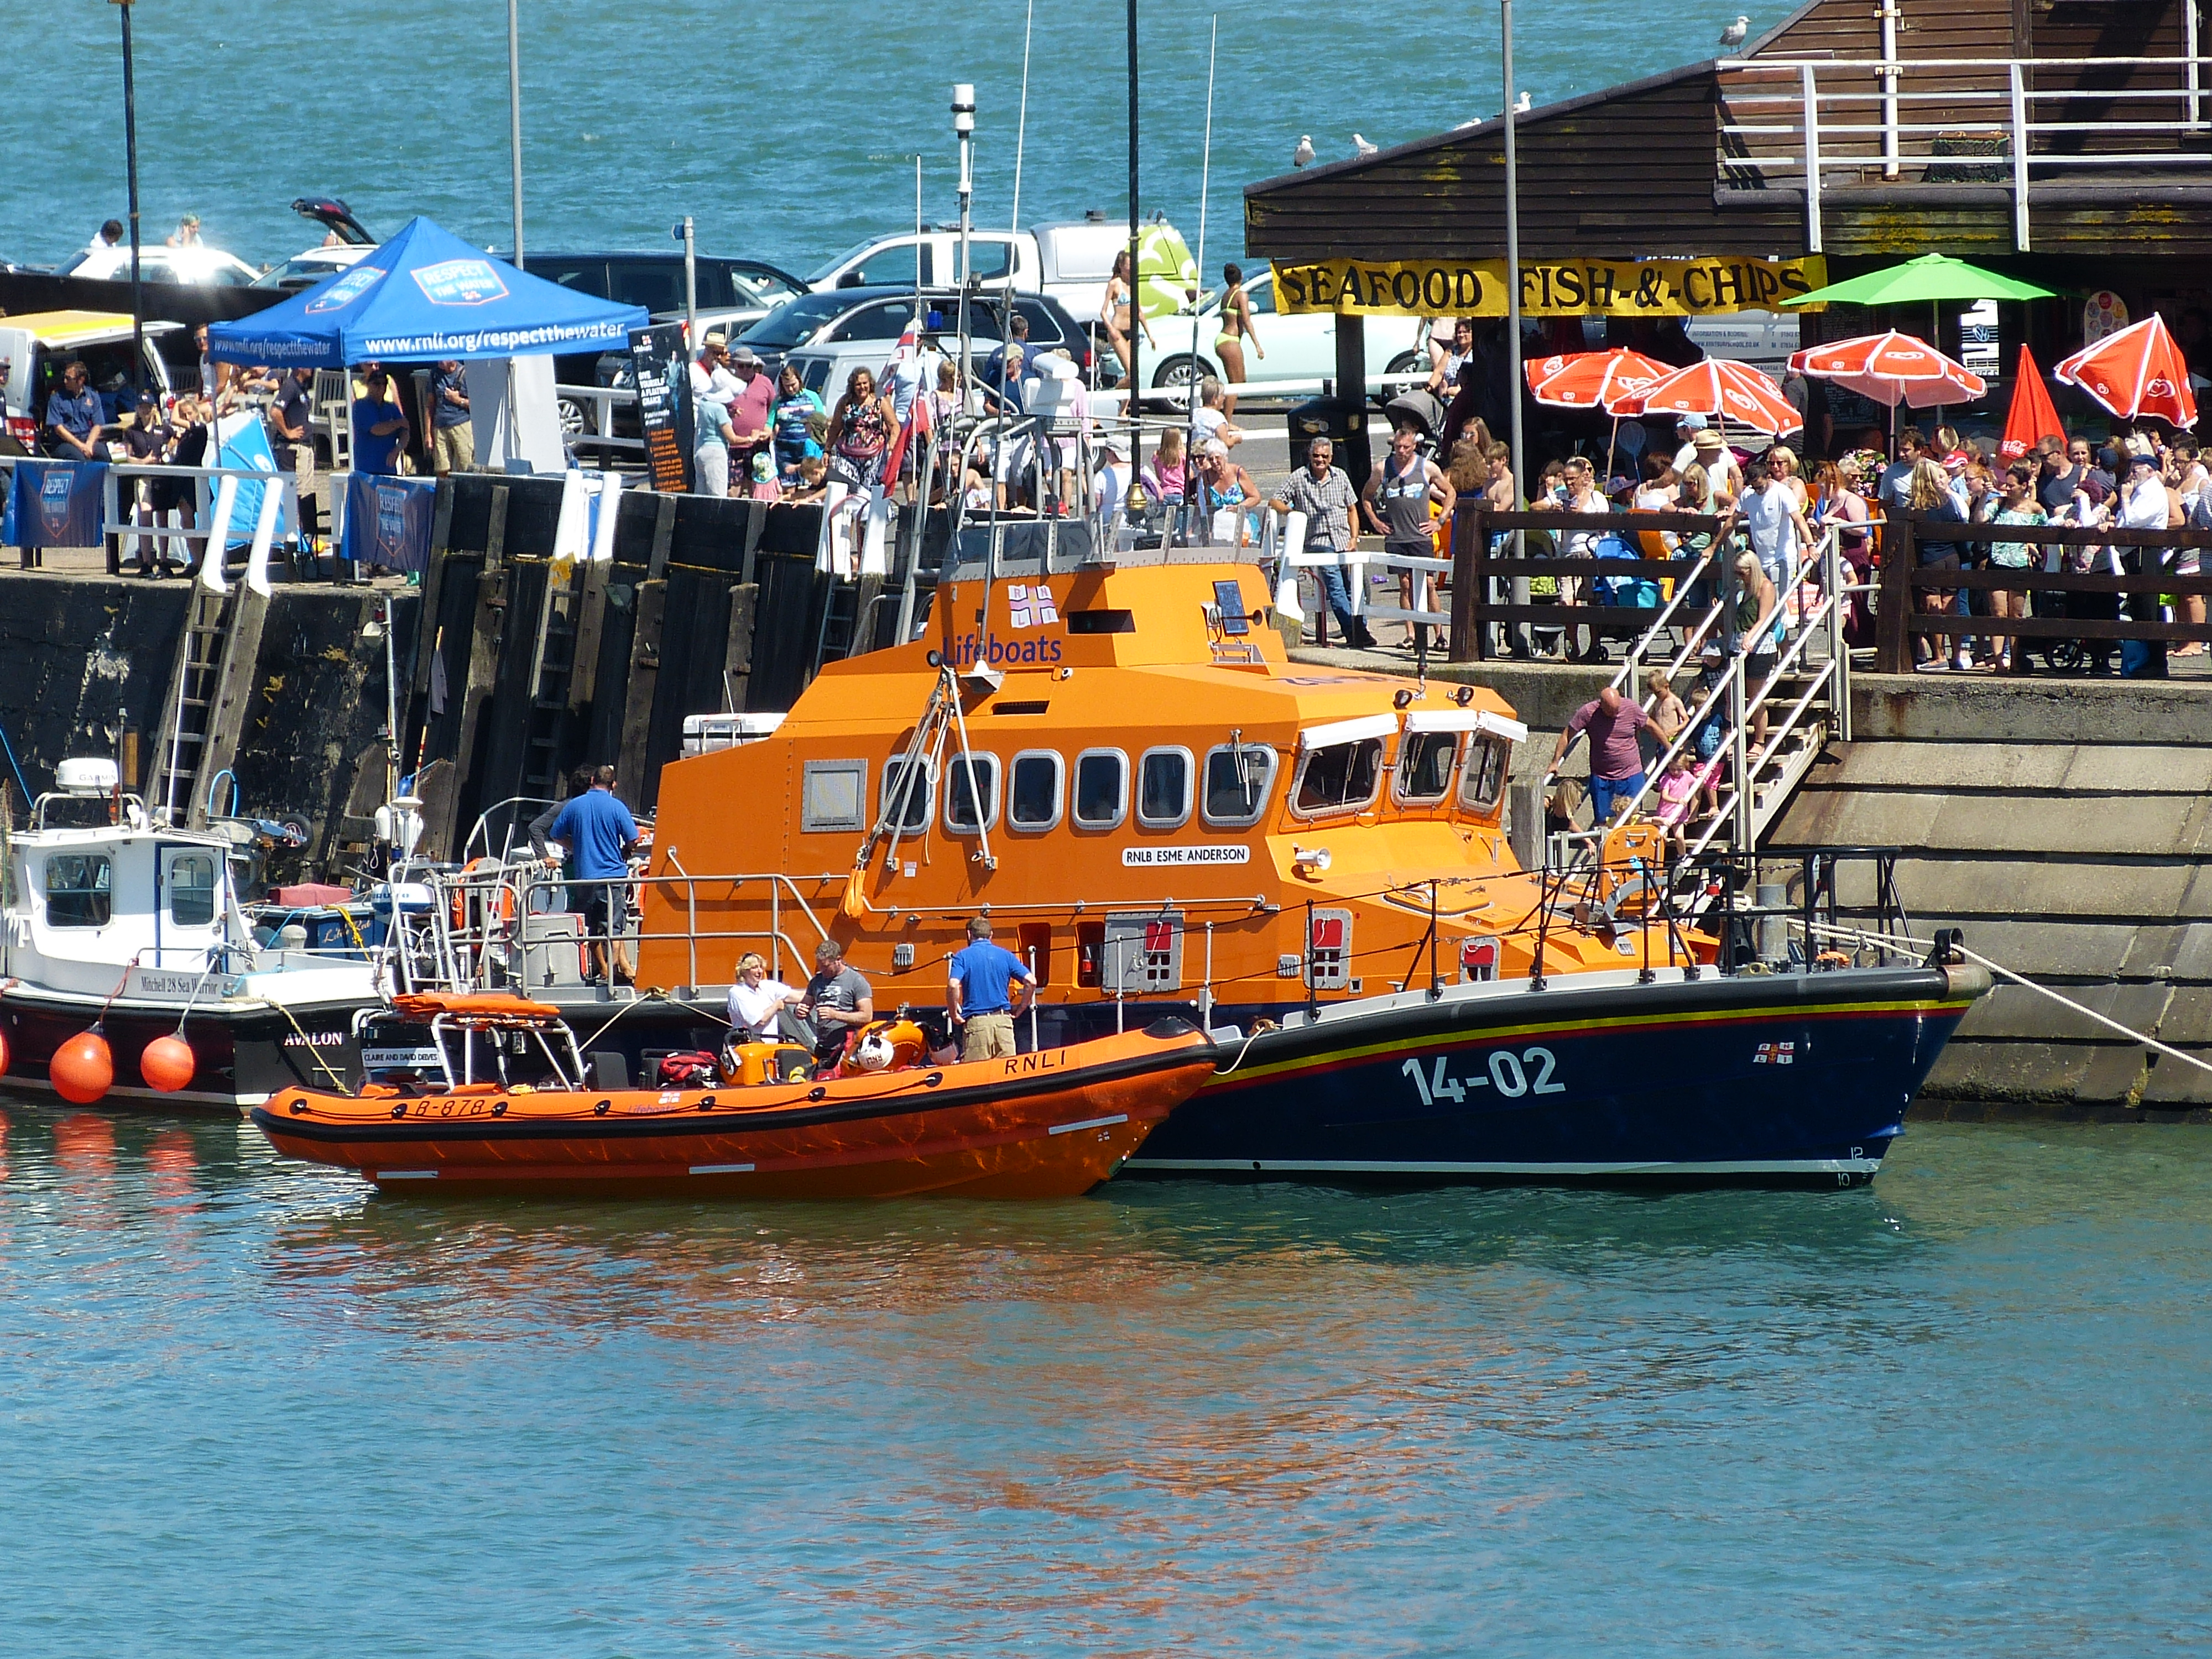 Huge crowds turned out for the opportunity to look around the Ramsgate lifeboat.